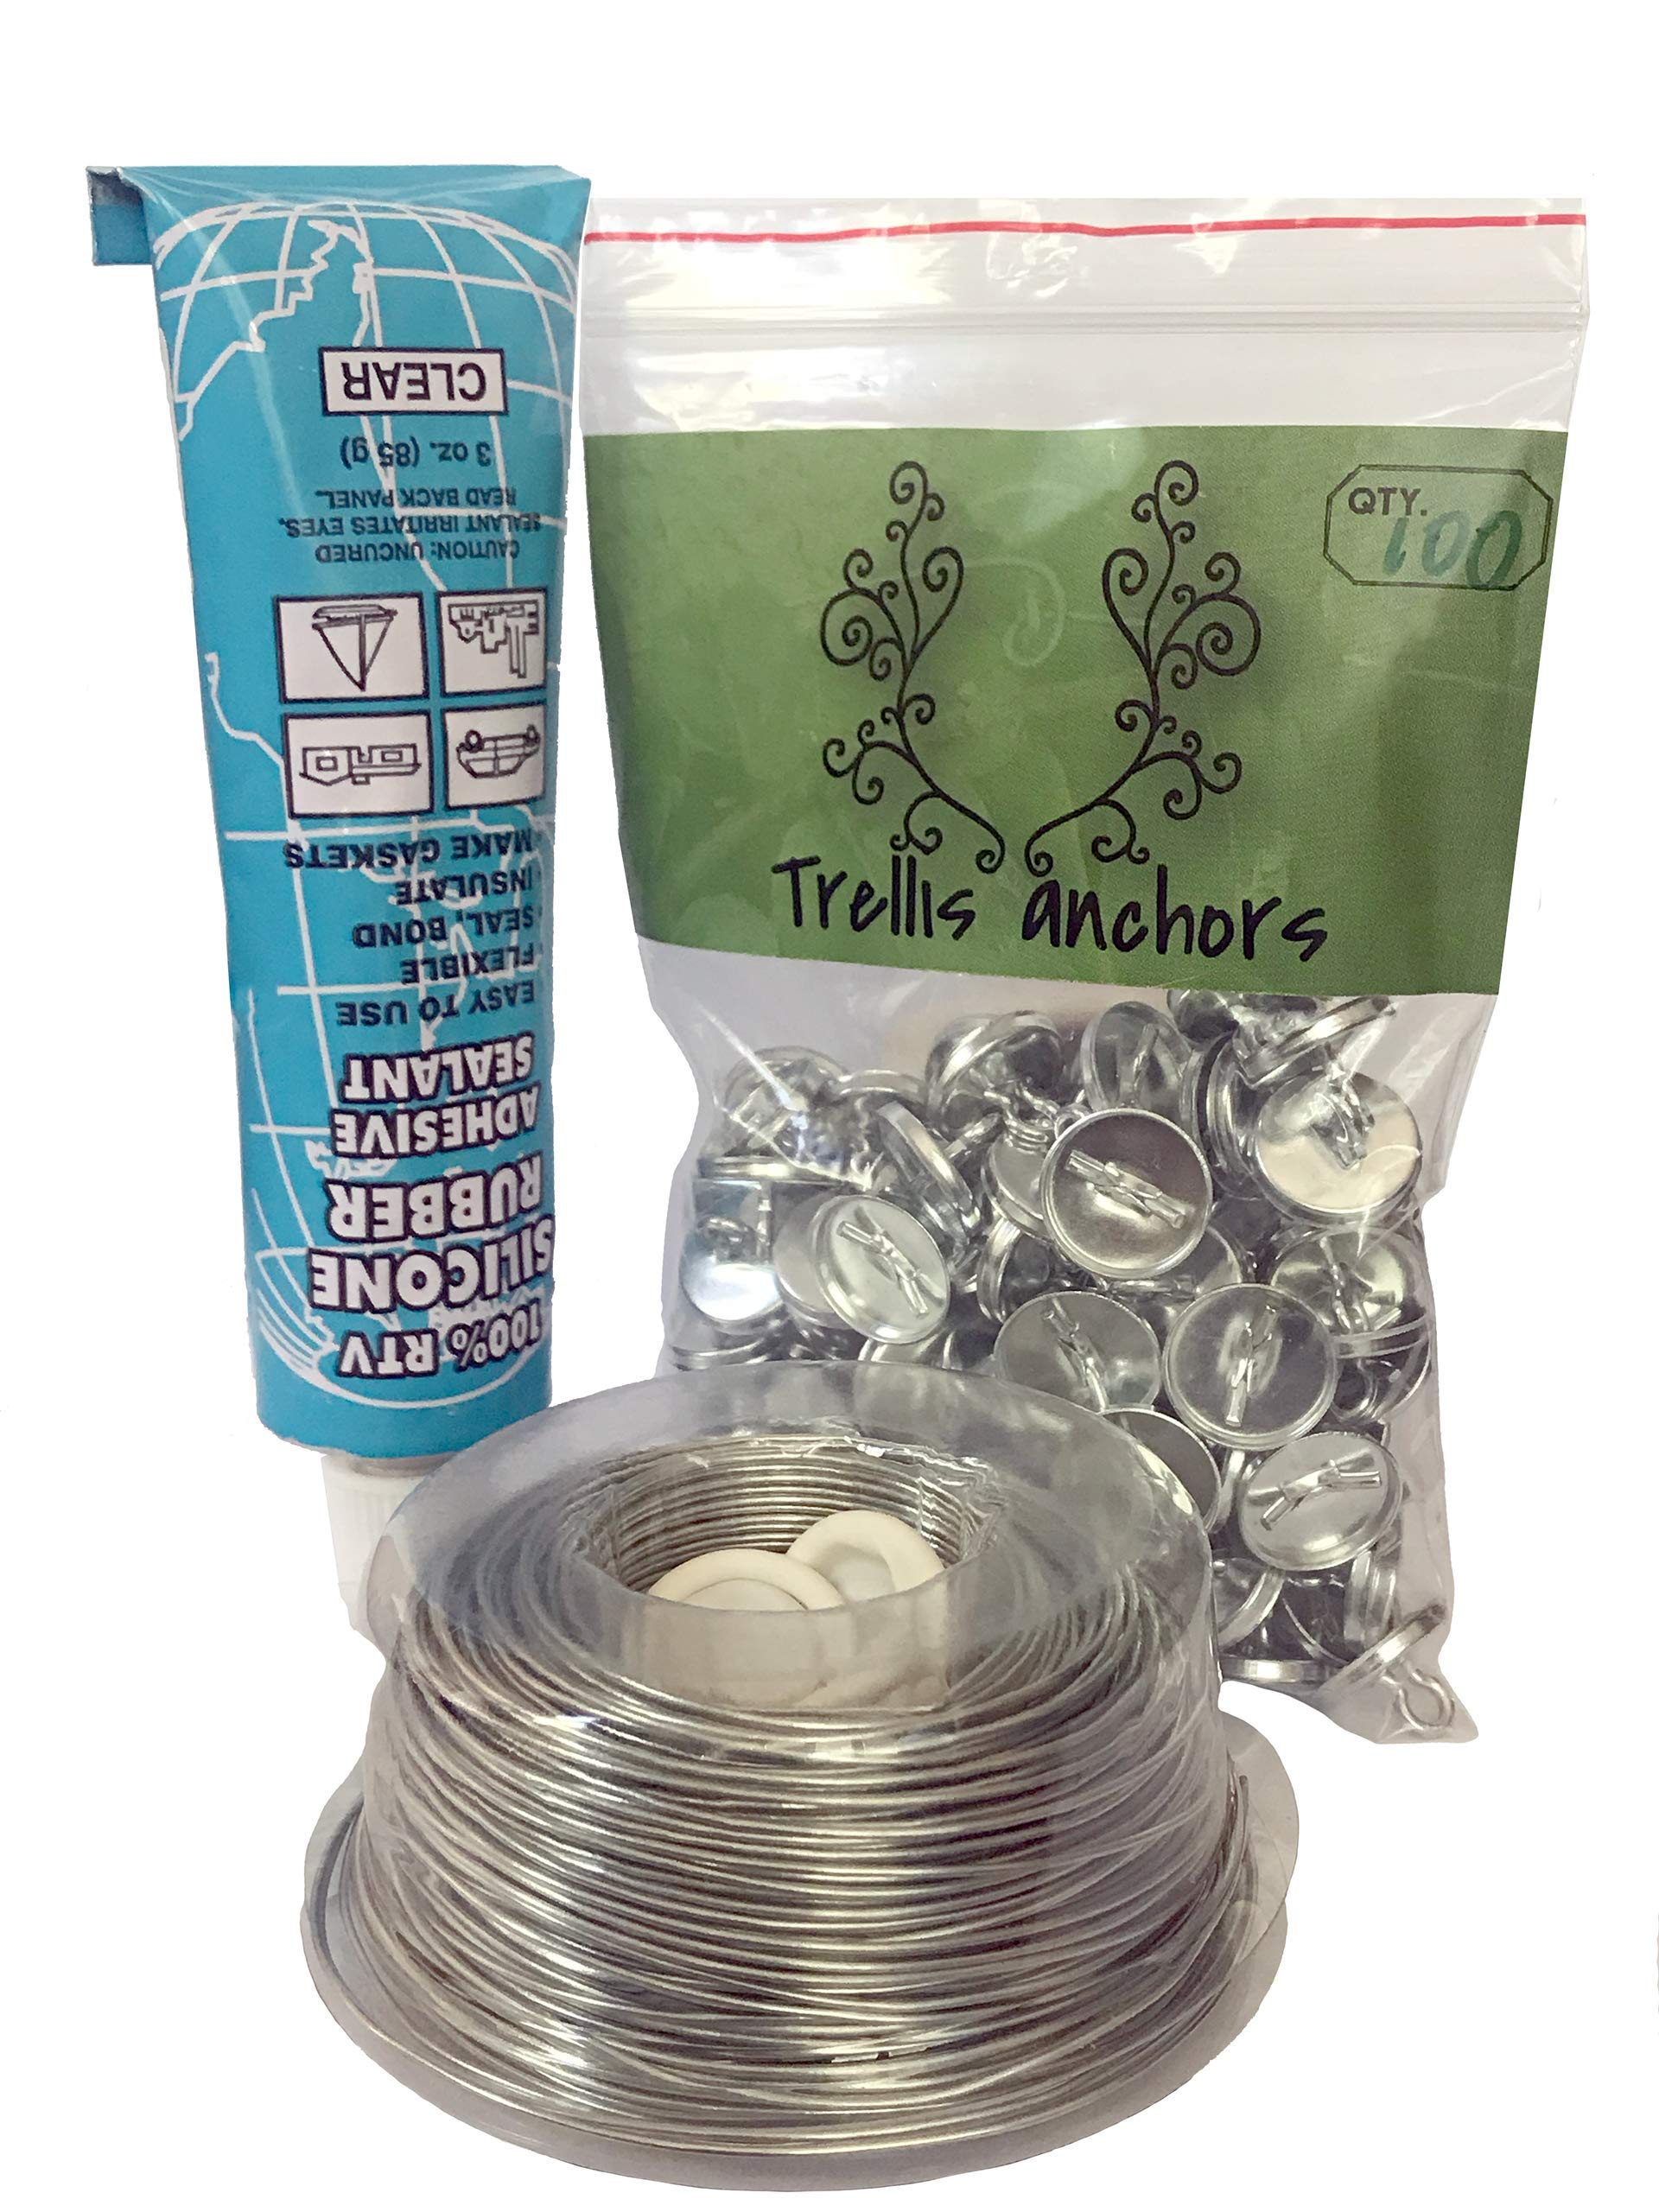 Trellis Anchor Plants, Vine, Trellis Design Kit 100-Piece Plant Anchors,3 Ounce Silicone Adhesive, 175 Feet Galvanized Steel Wire and Finger Cots by Trellis Anchor